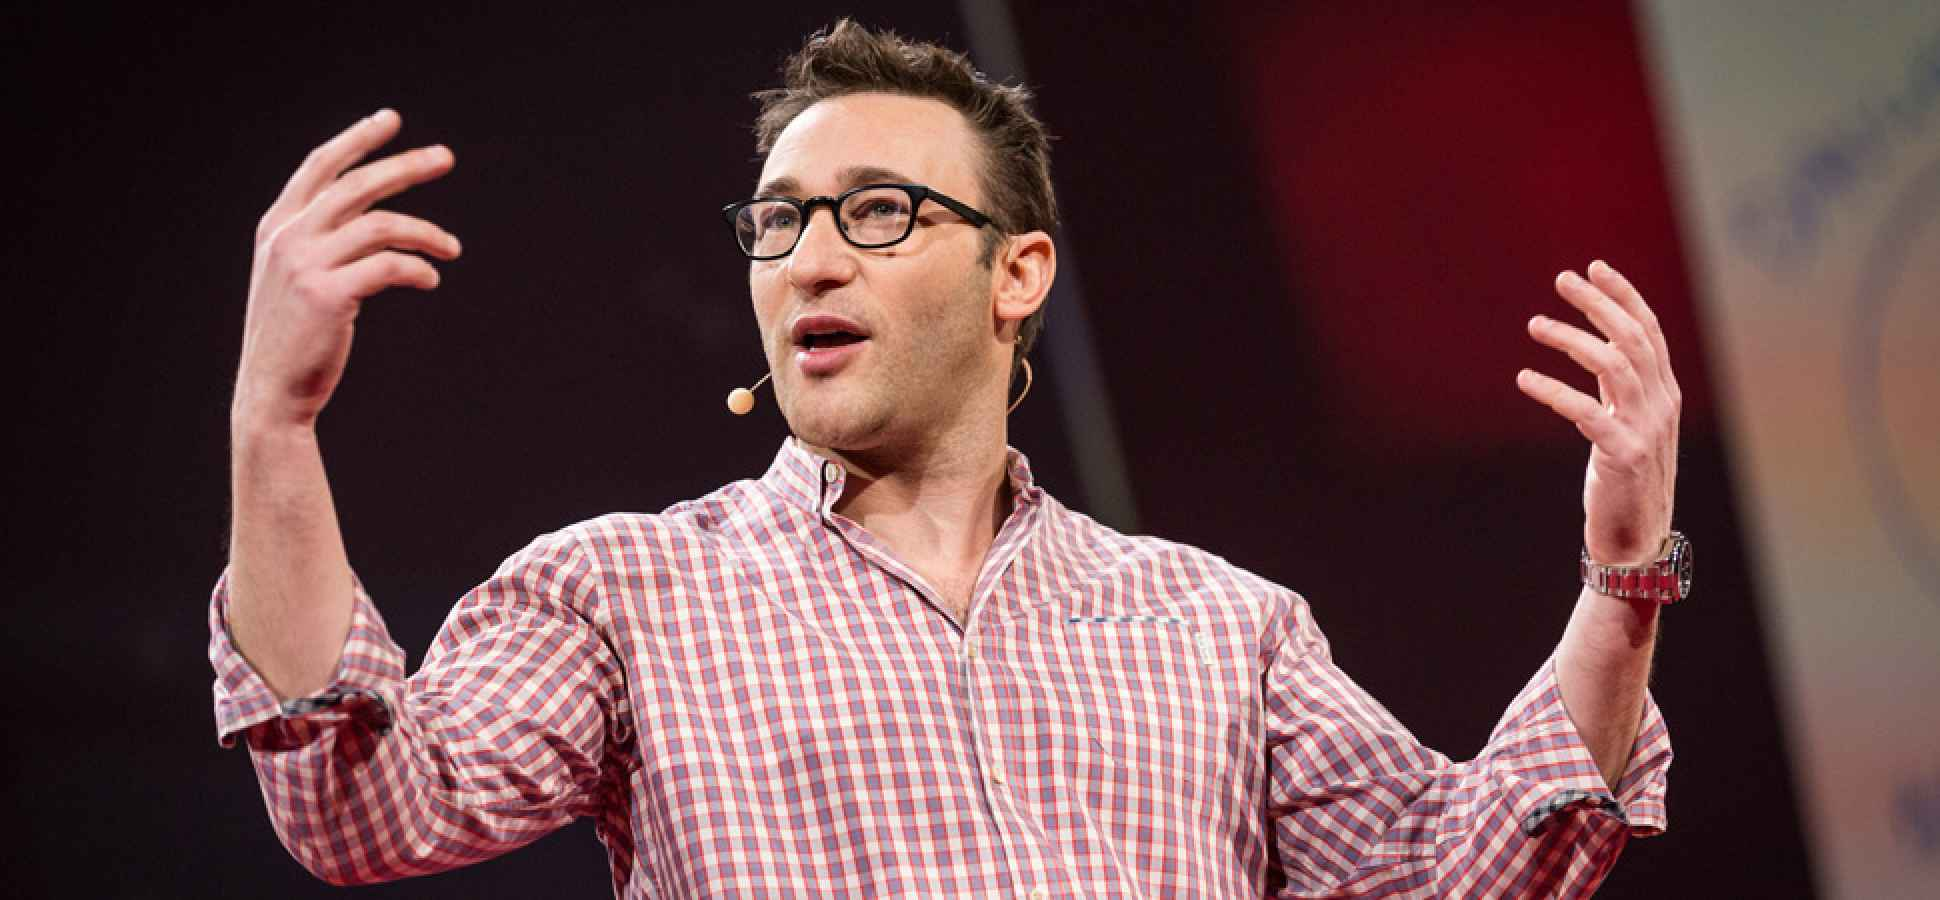 Simon Sinek Says If Leaders Fail to Do This, Customers and Companies Will Suffer